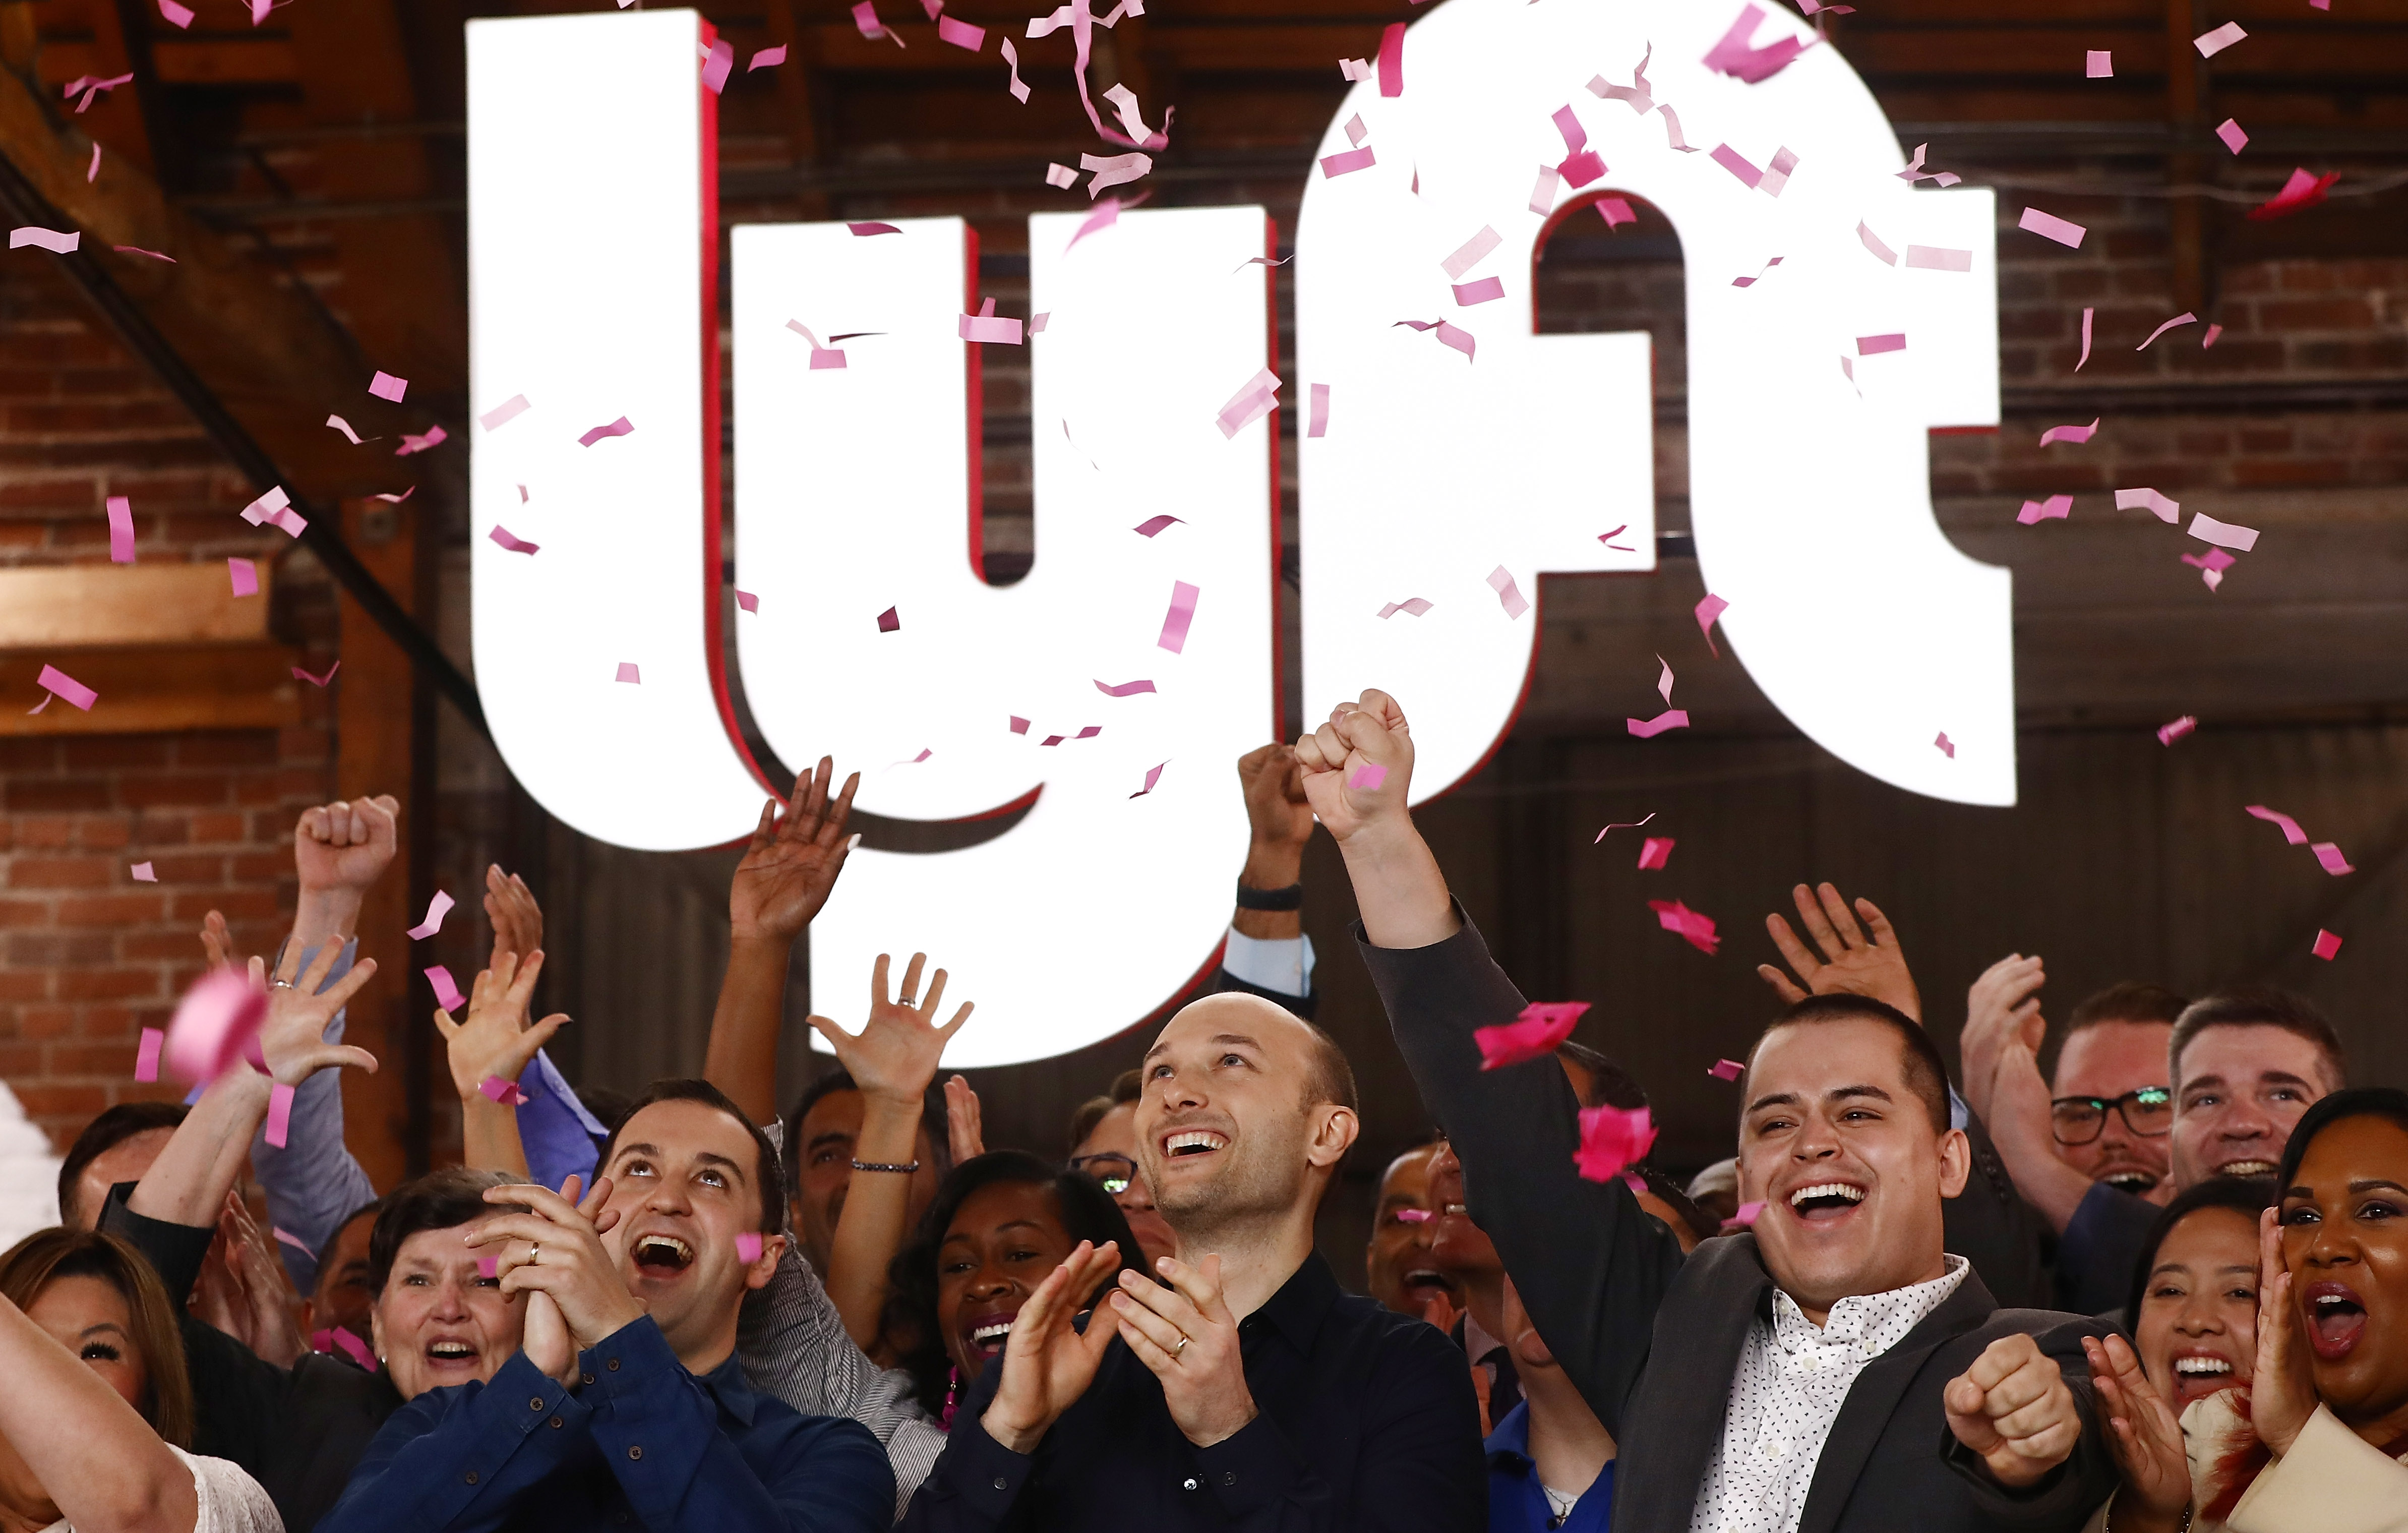 Ride-hailing app Lyft employees at the company's IPO on the Nasdaq stock exchange raise their hands in the air while pink confetti falls on them.